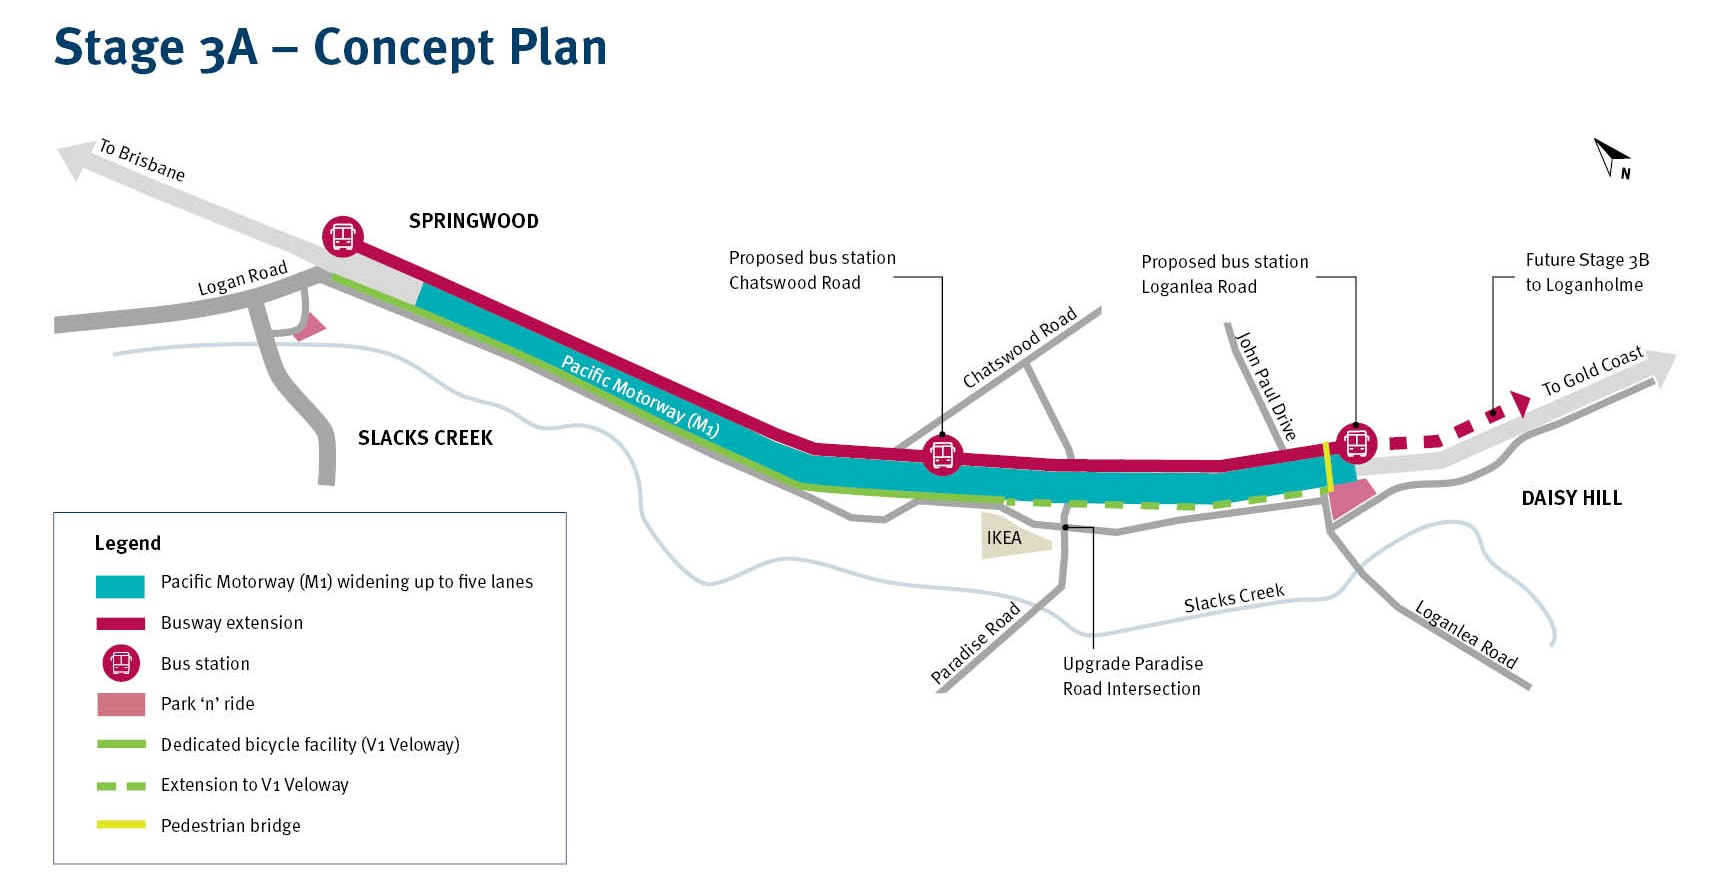 Concept plan for Stage 3A